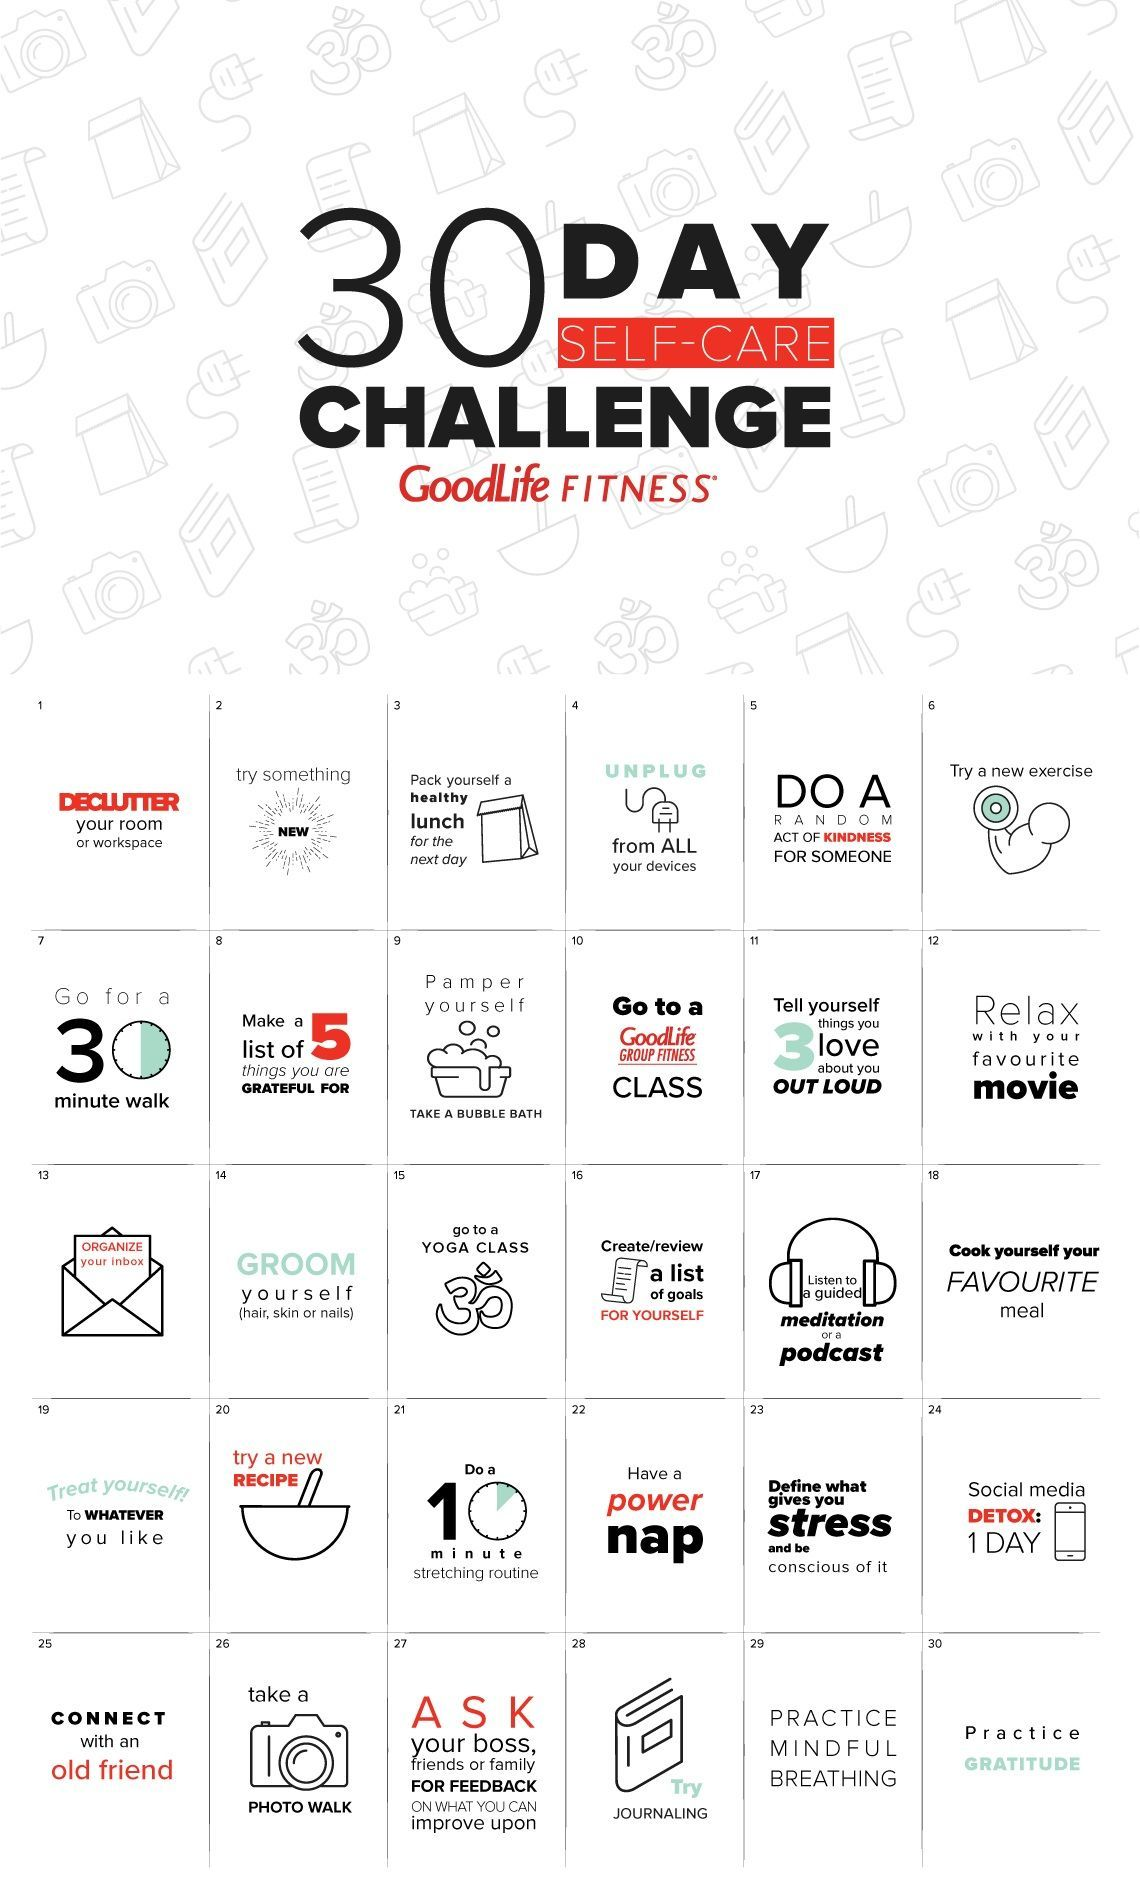 30day selfcare challenge The GoodLife Fitness Blog in